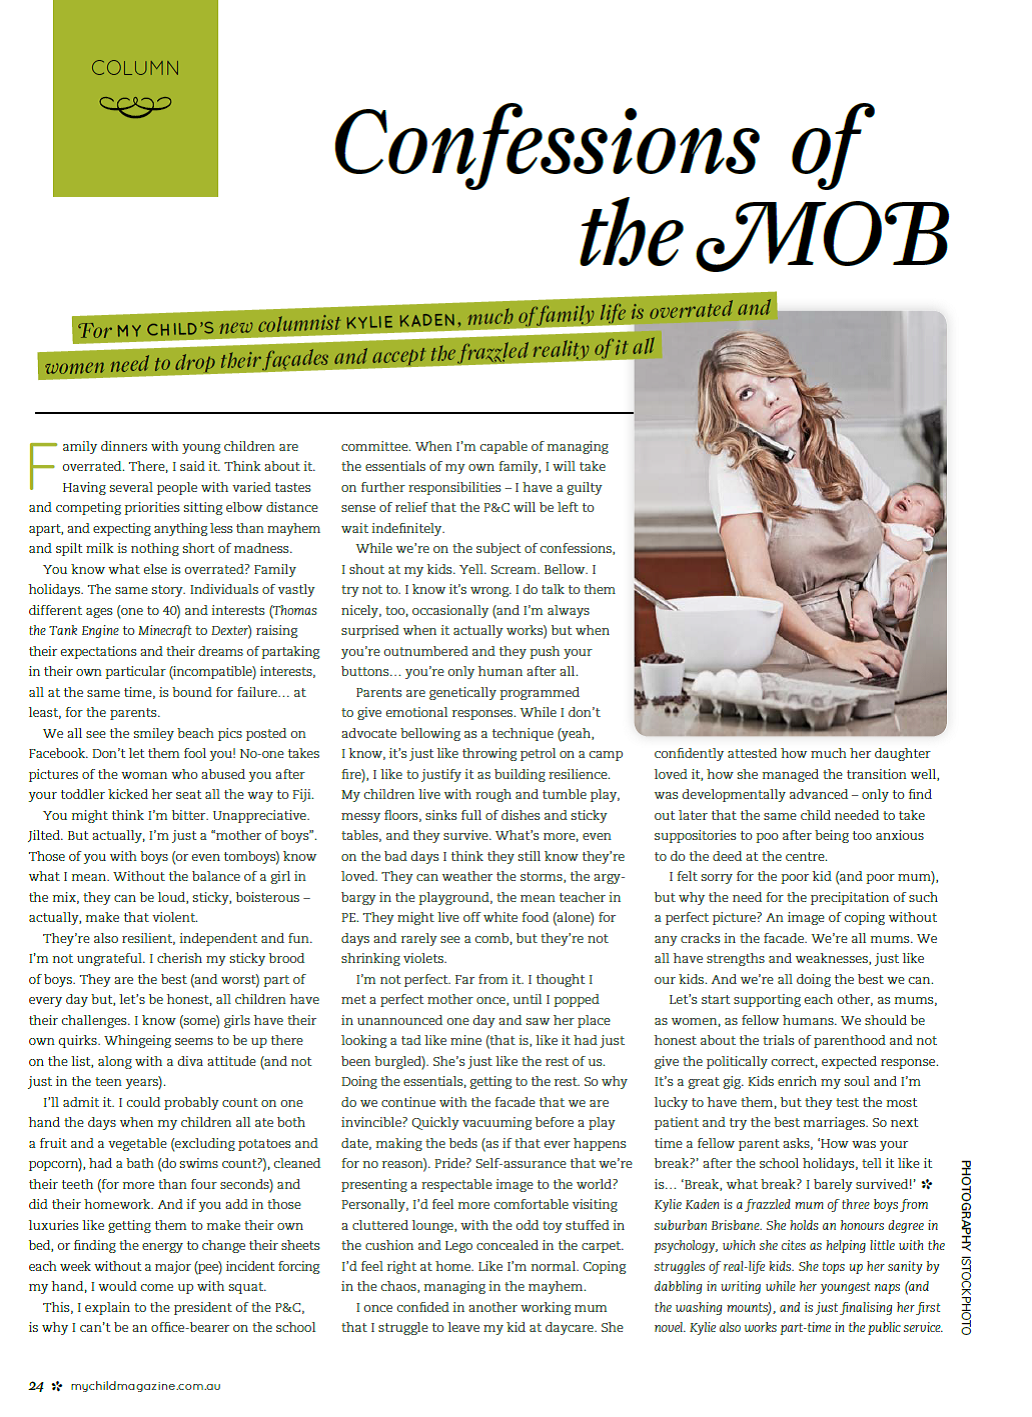 My Child Column - Confessions of the M.O.B